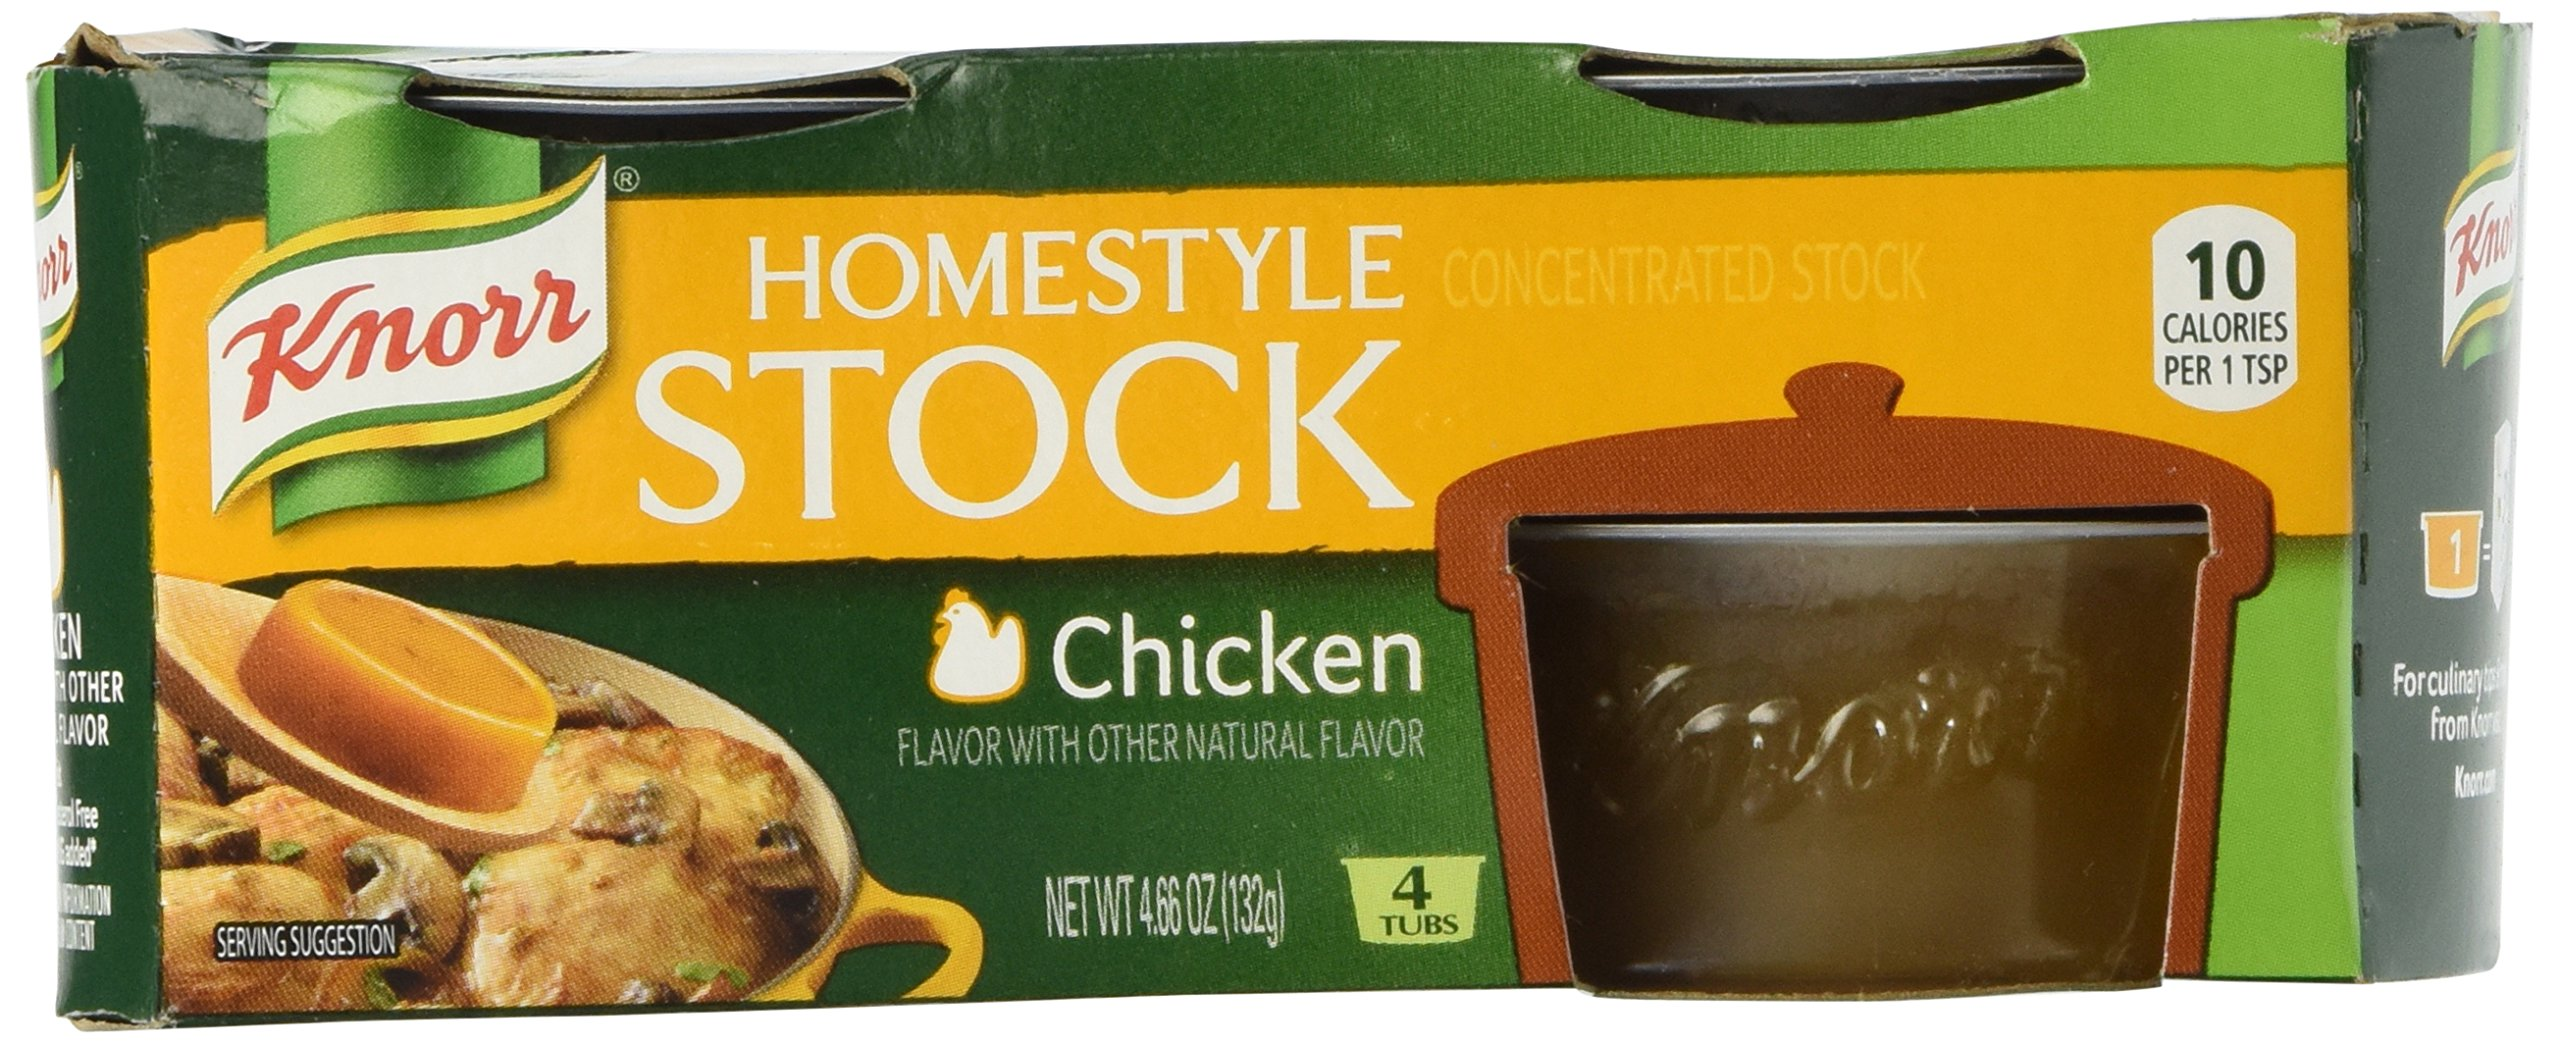 Knorr Homestyle Chicken Stock - 4.66 oz - 4 ct - 2 Pack